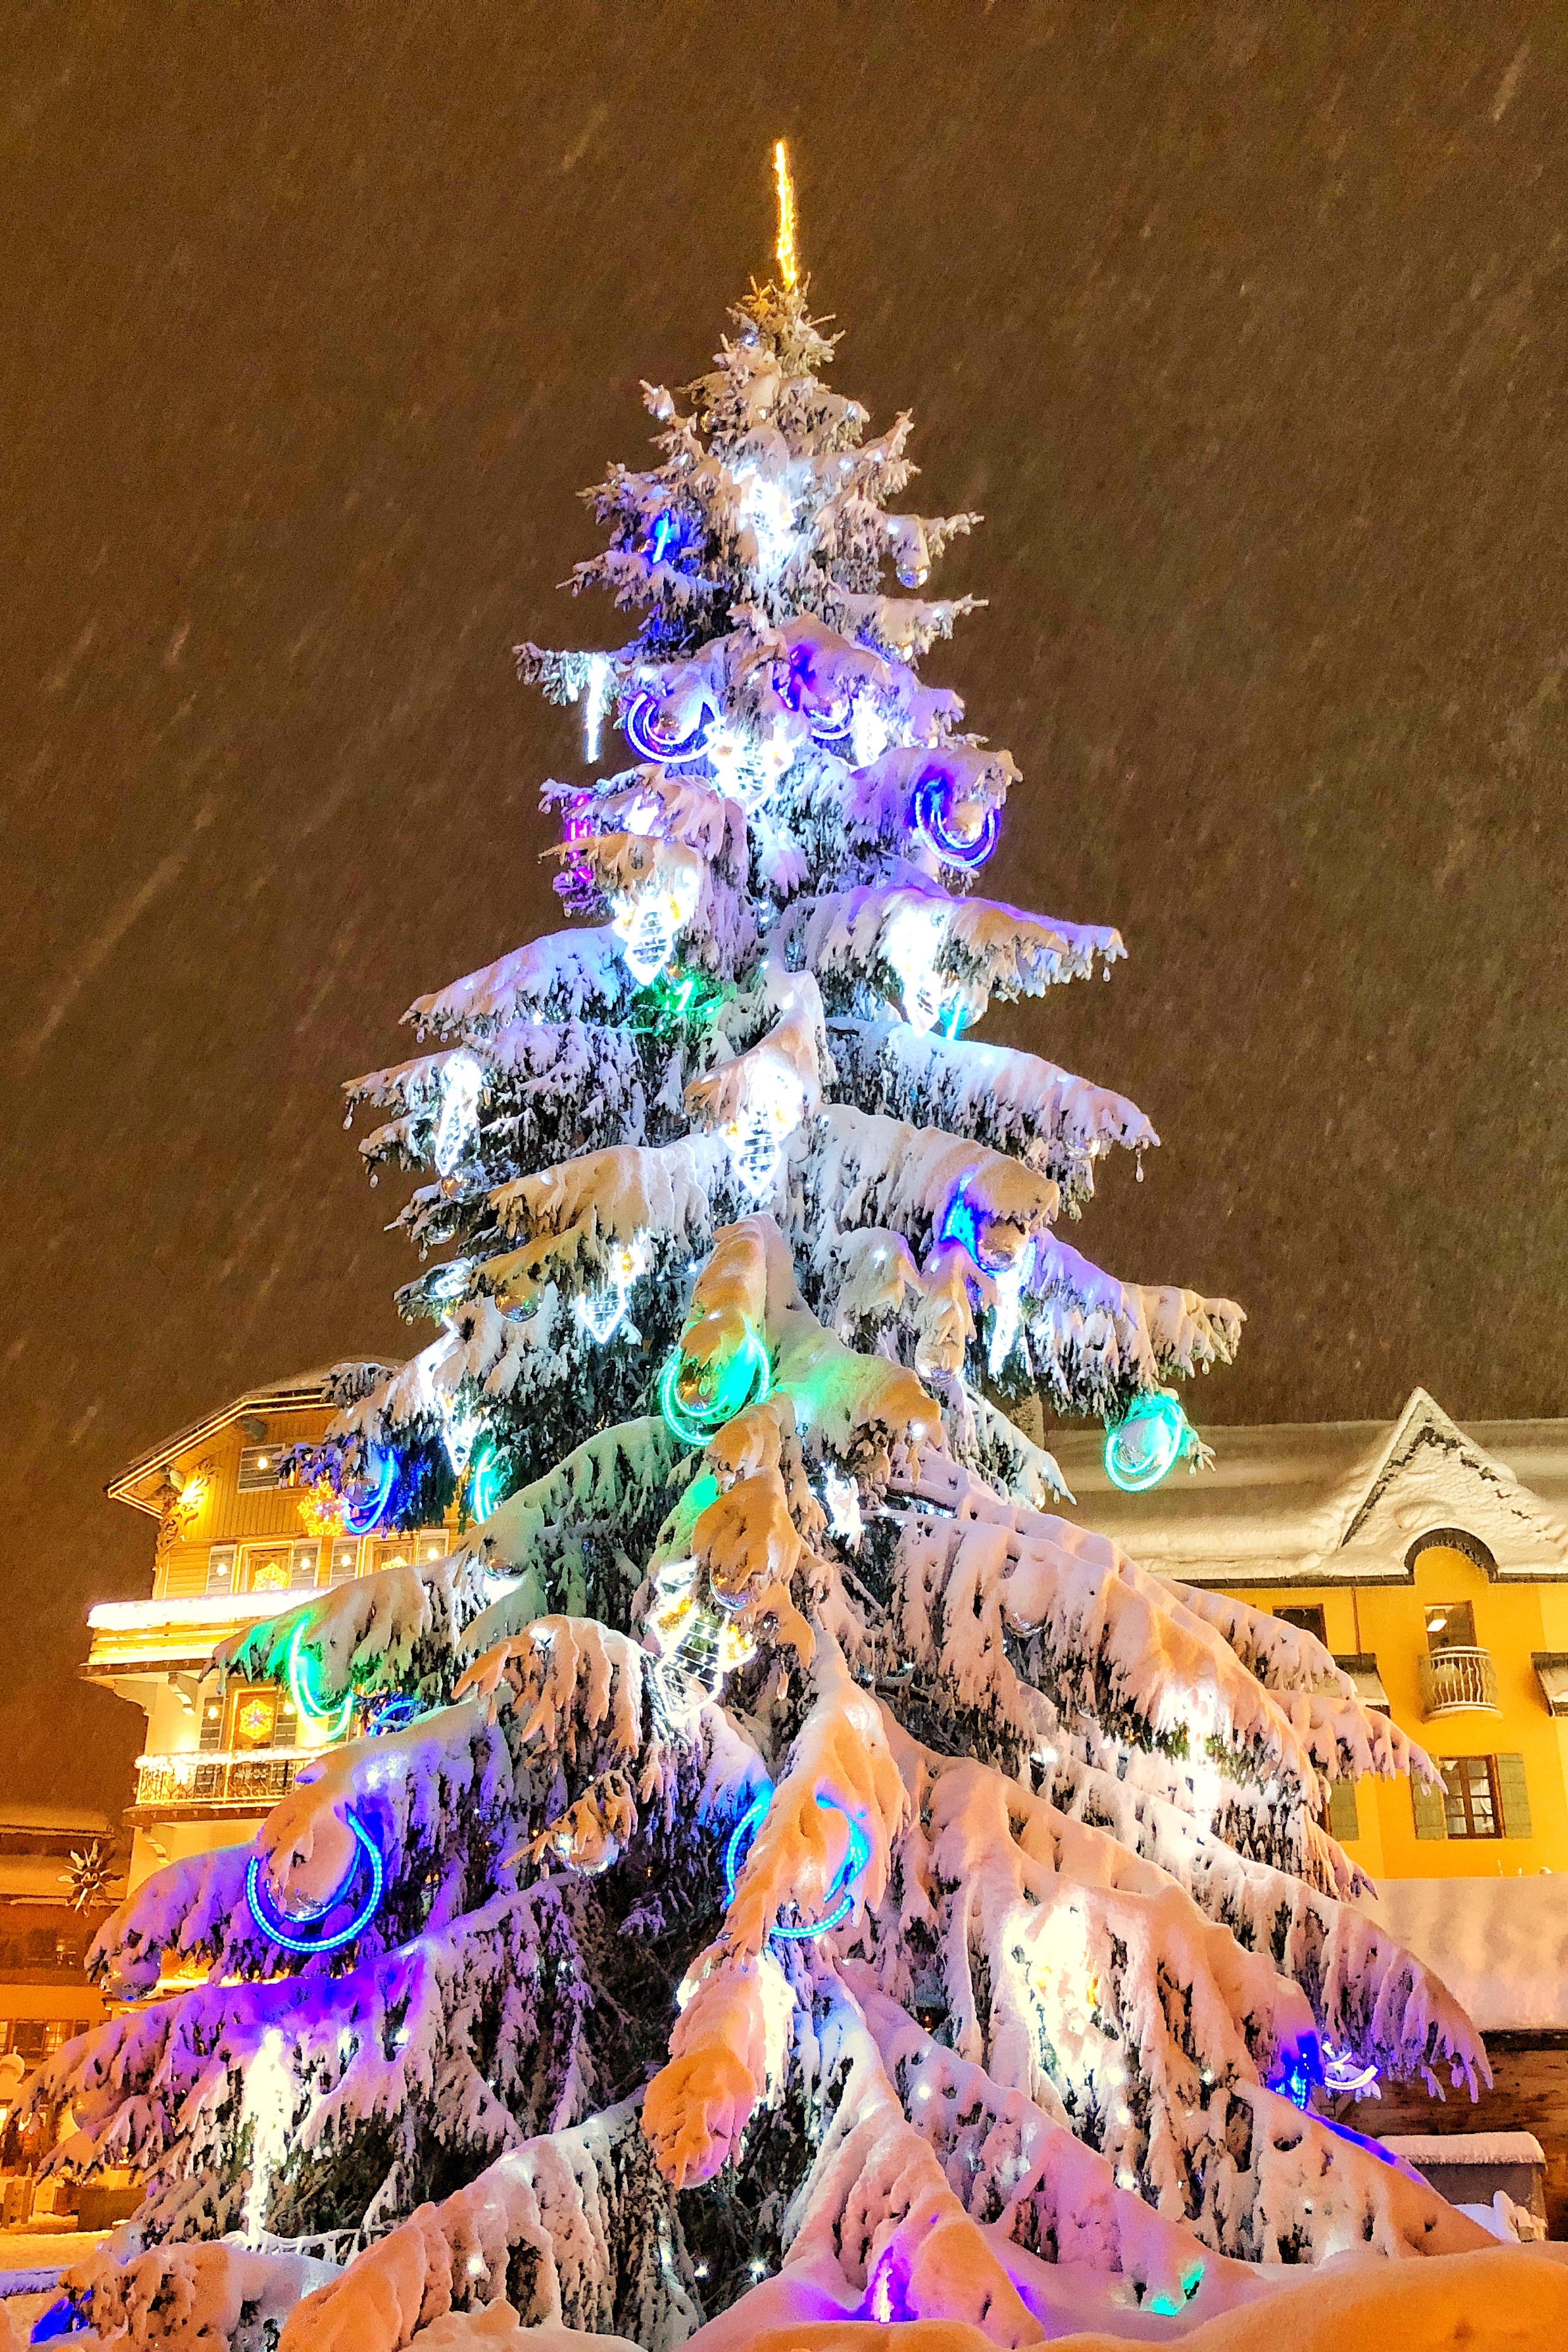 The Town-Square Tree laden with snow.